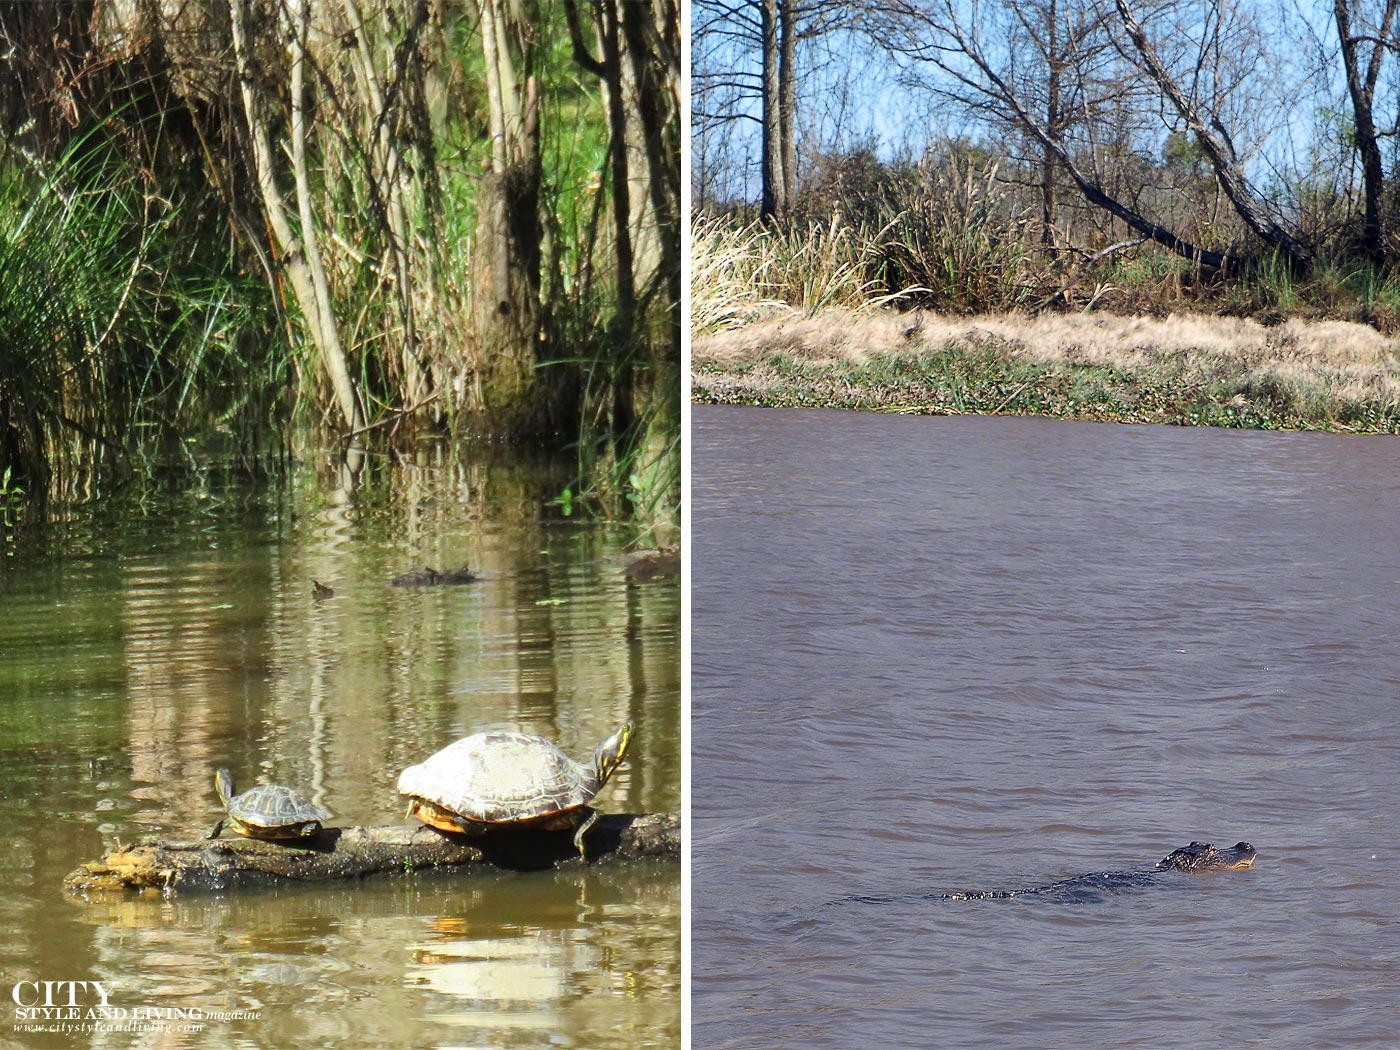 City Style and Living Magazine Honey Swamp alligator and turtle in water